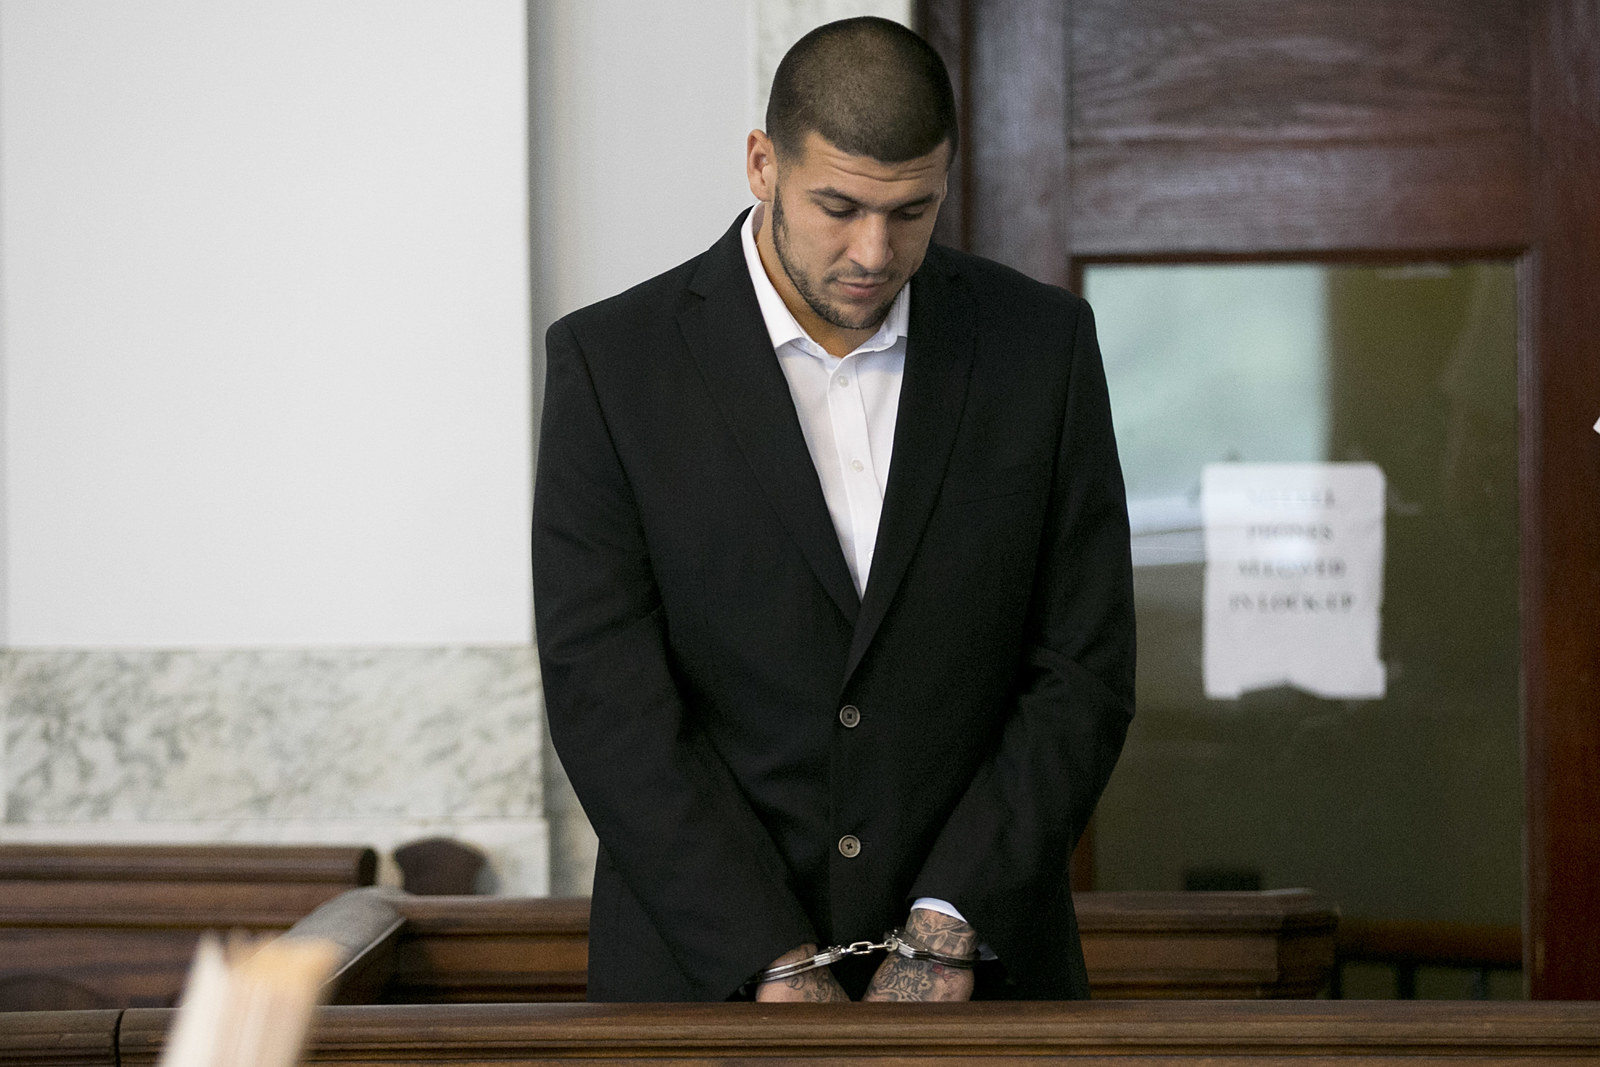 The Real Tragedy Of The Aaron Hernandez Story